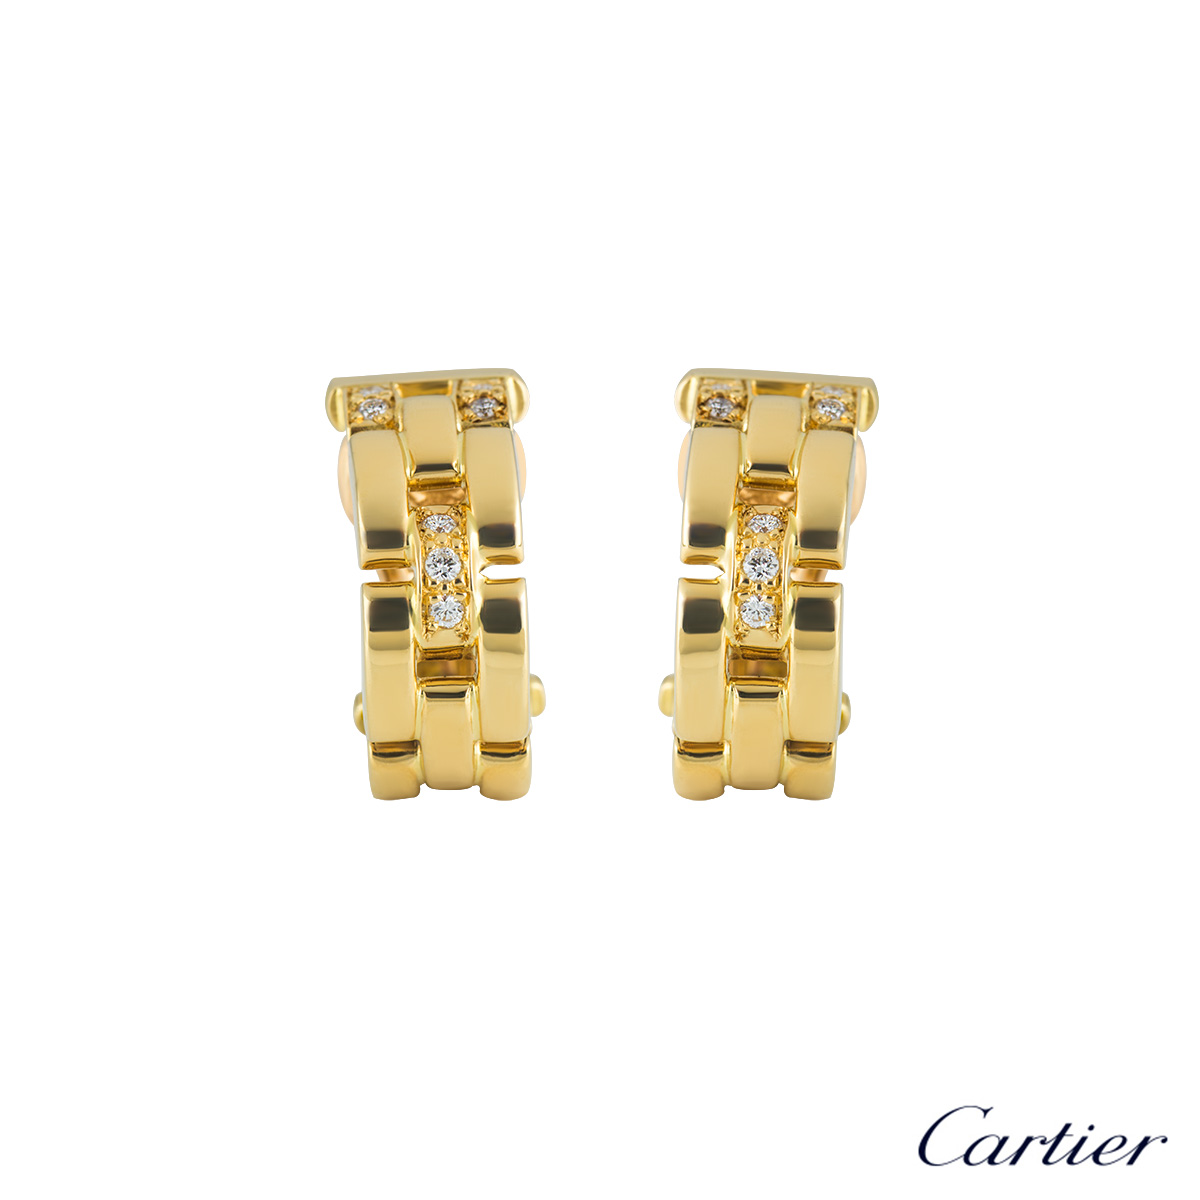 c46036c2948a3 Cartier Panthere Earrings